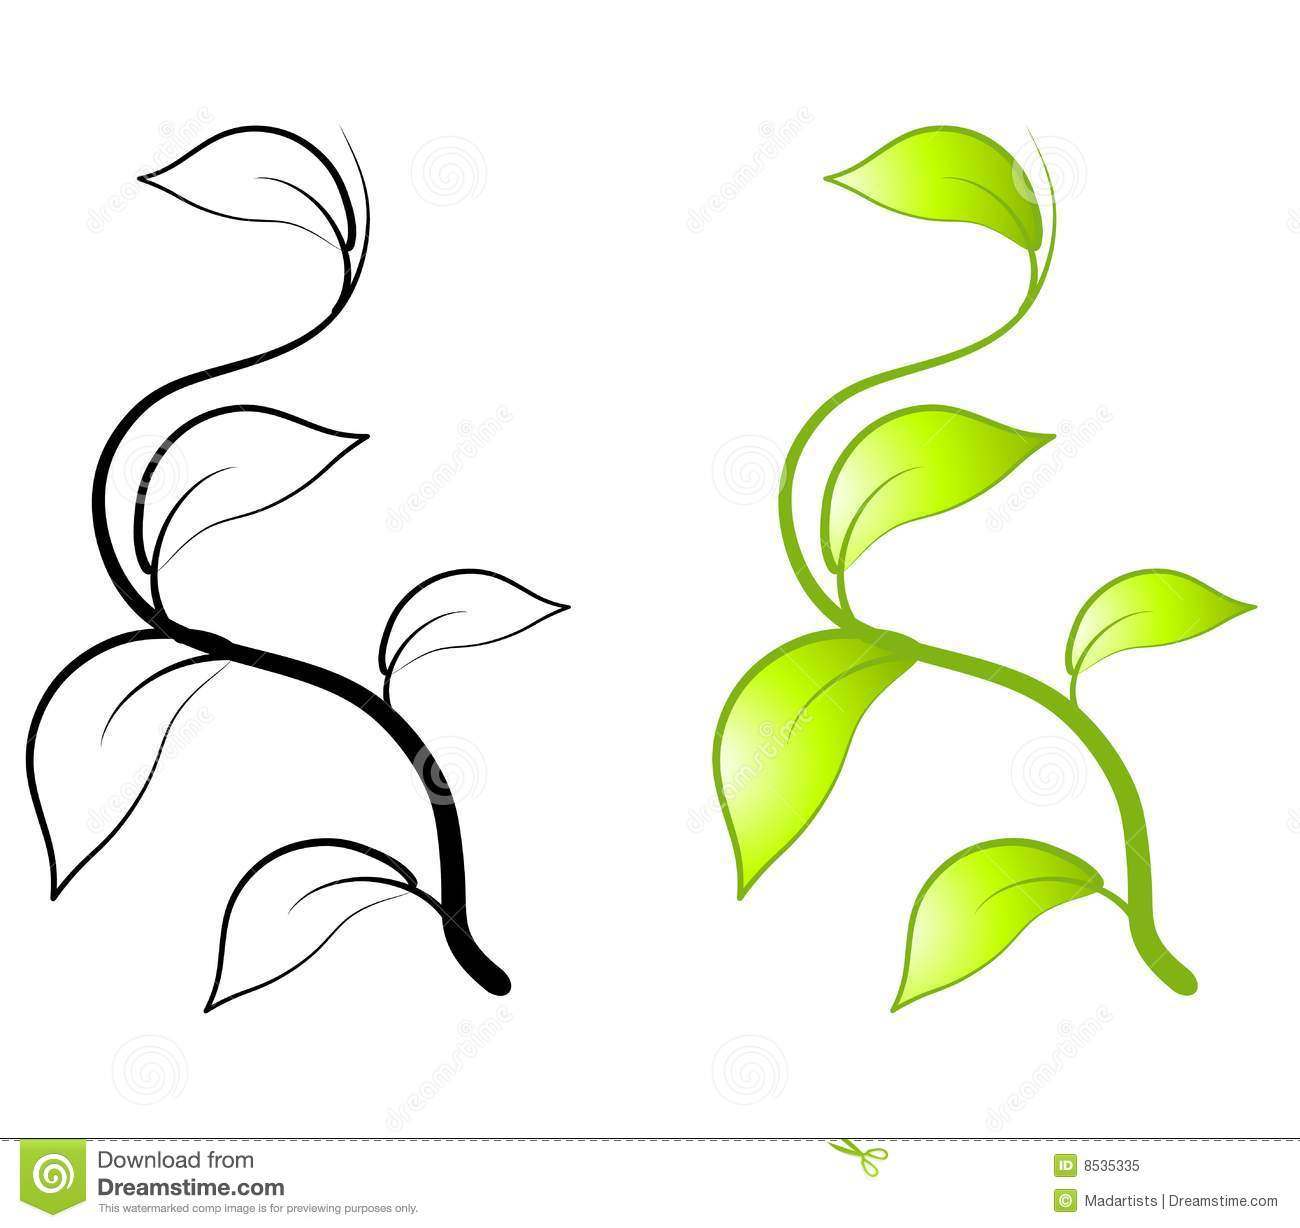 Free corner cliparts download. Vines clipart artistic